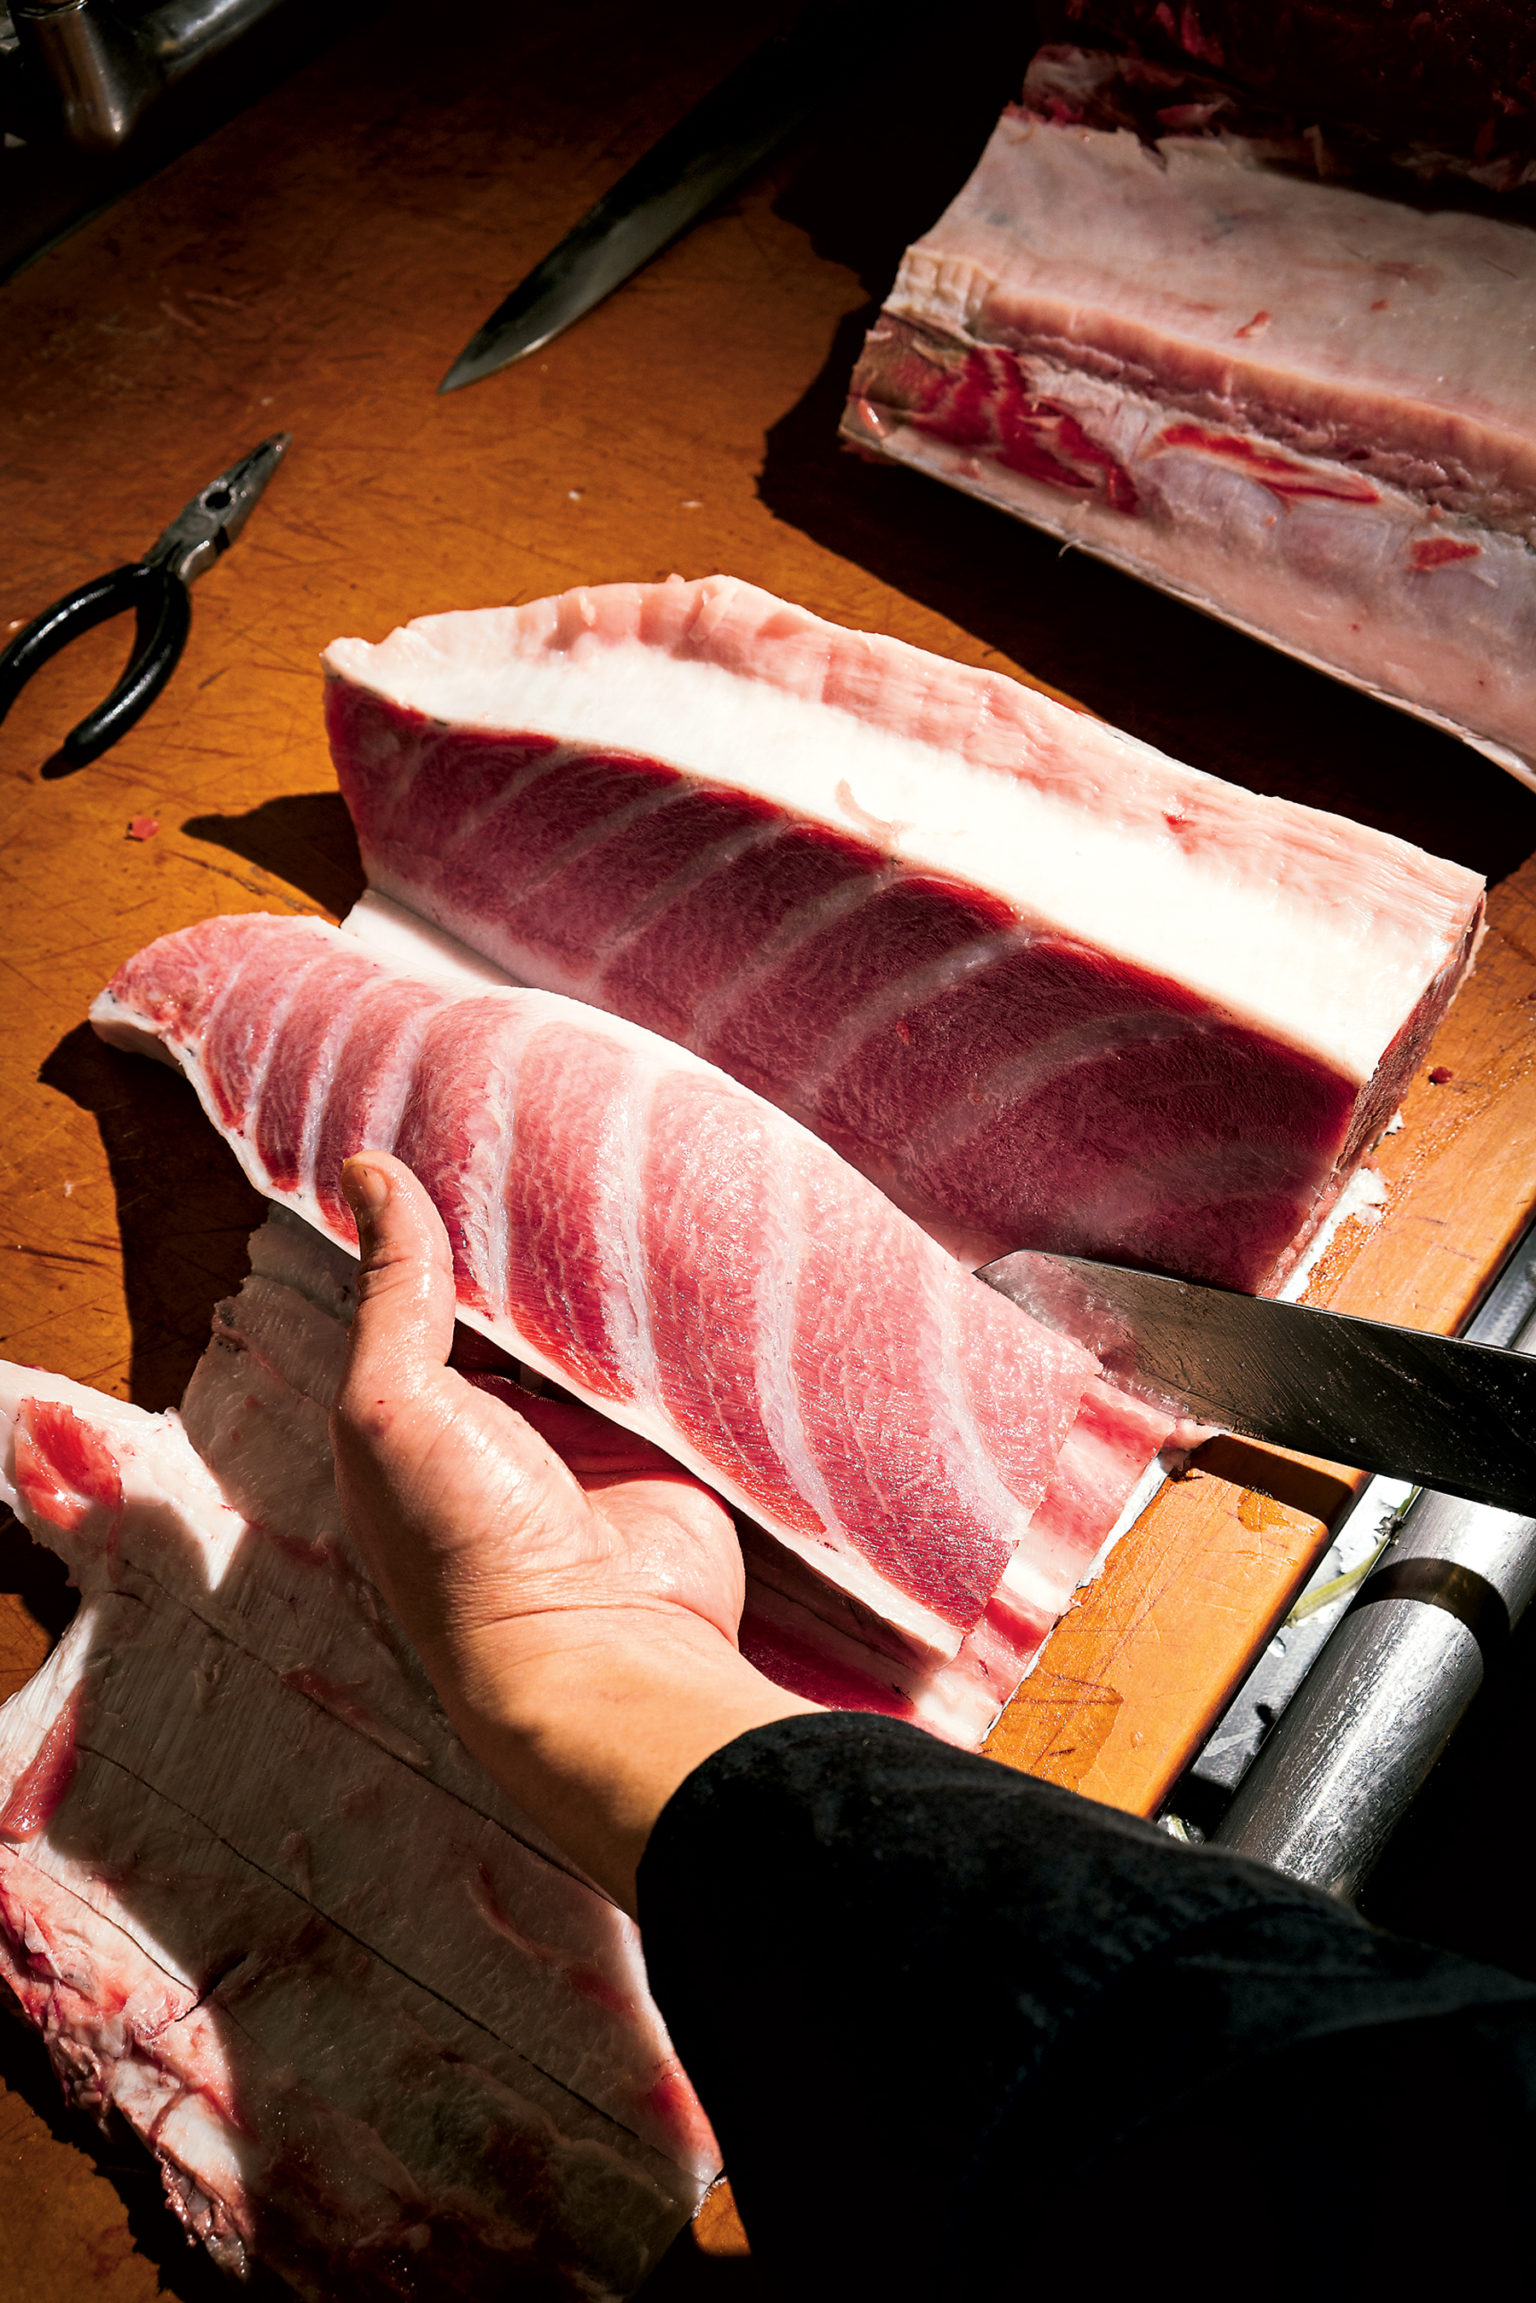 The brothers say some of the best bluefin tuna is farm-raised in Spain. And fresh isn't actually better – they dry-age the fish, like steak, for about ten days.